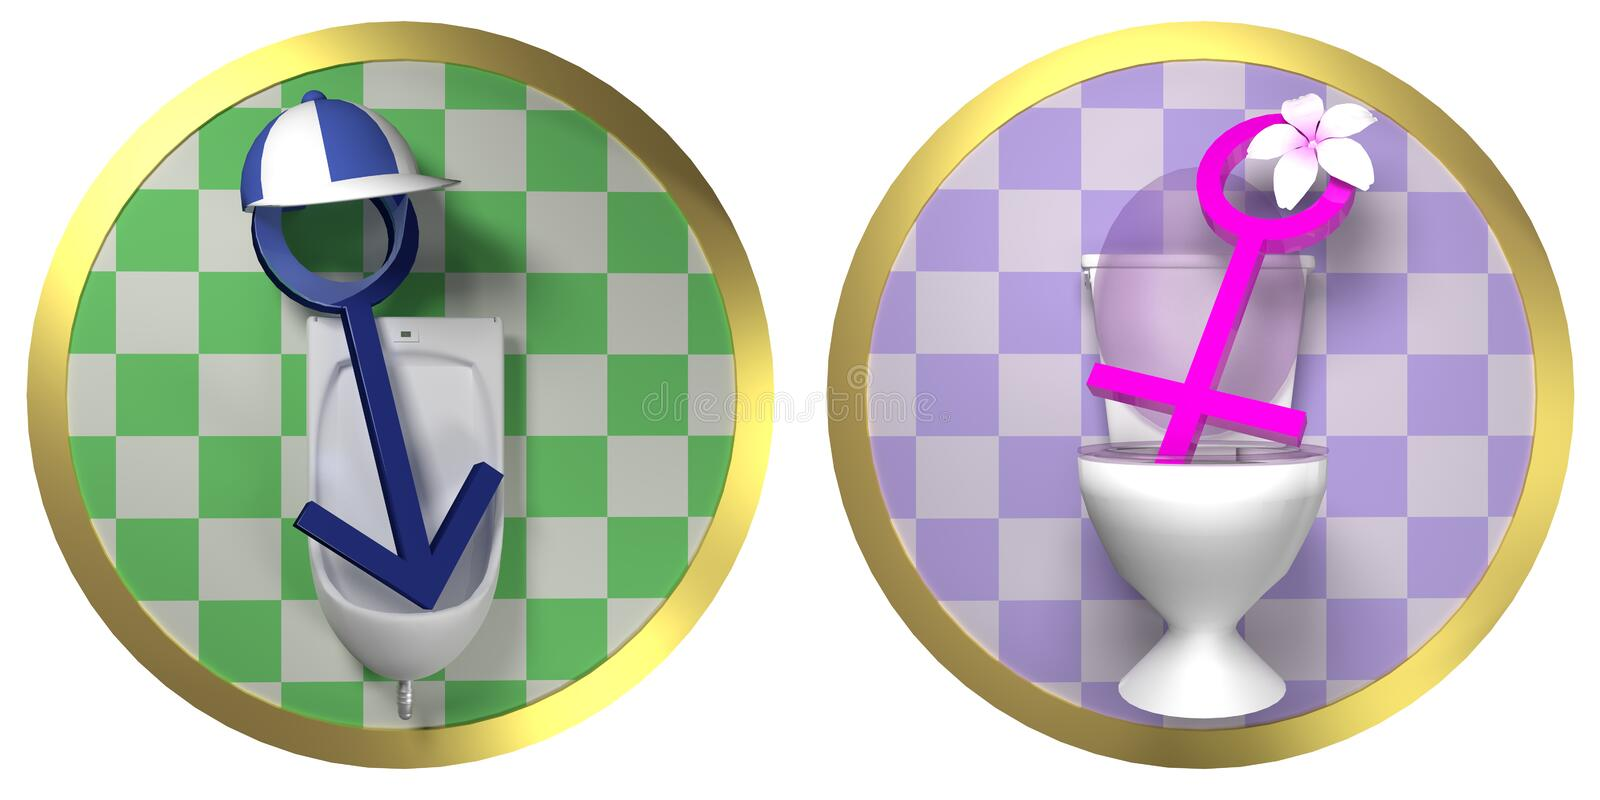 Download Restroom - Female And Male Toilet Sign On Tiled Wall With Golden Border Stock Illustration - Illustration of creativity, path: 32148006